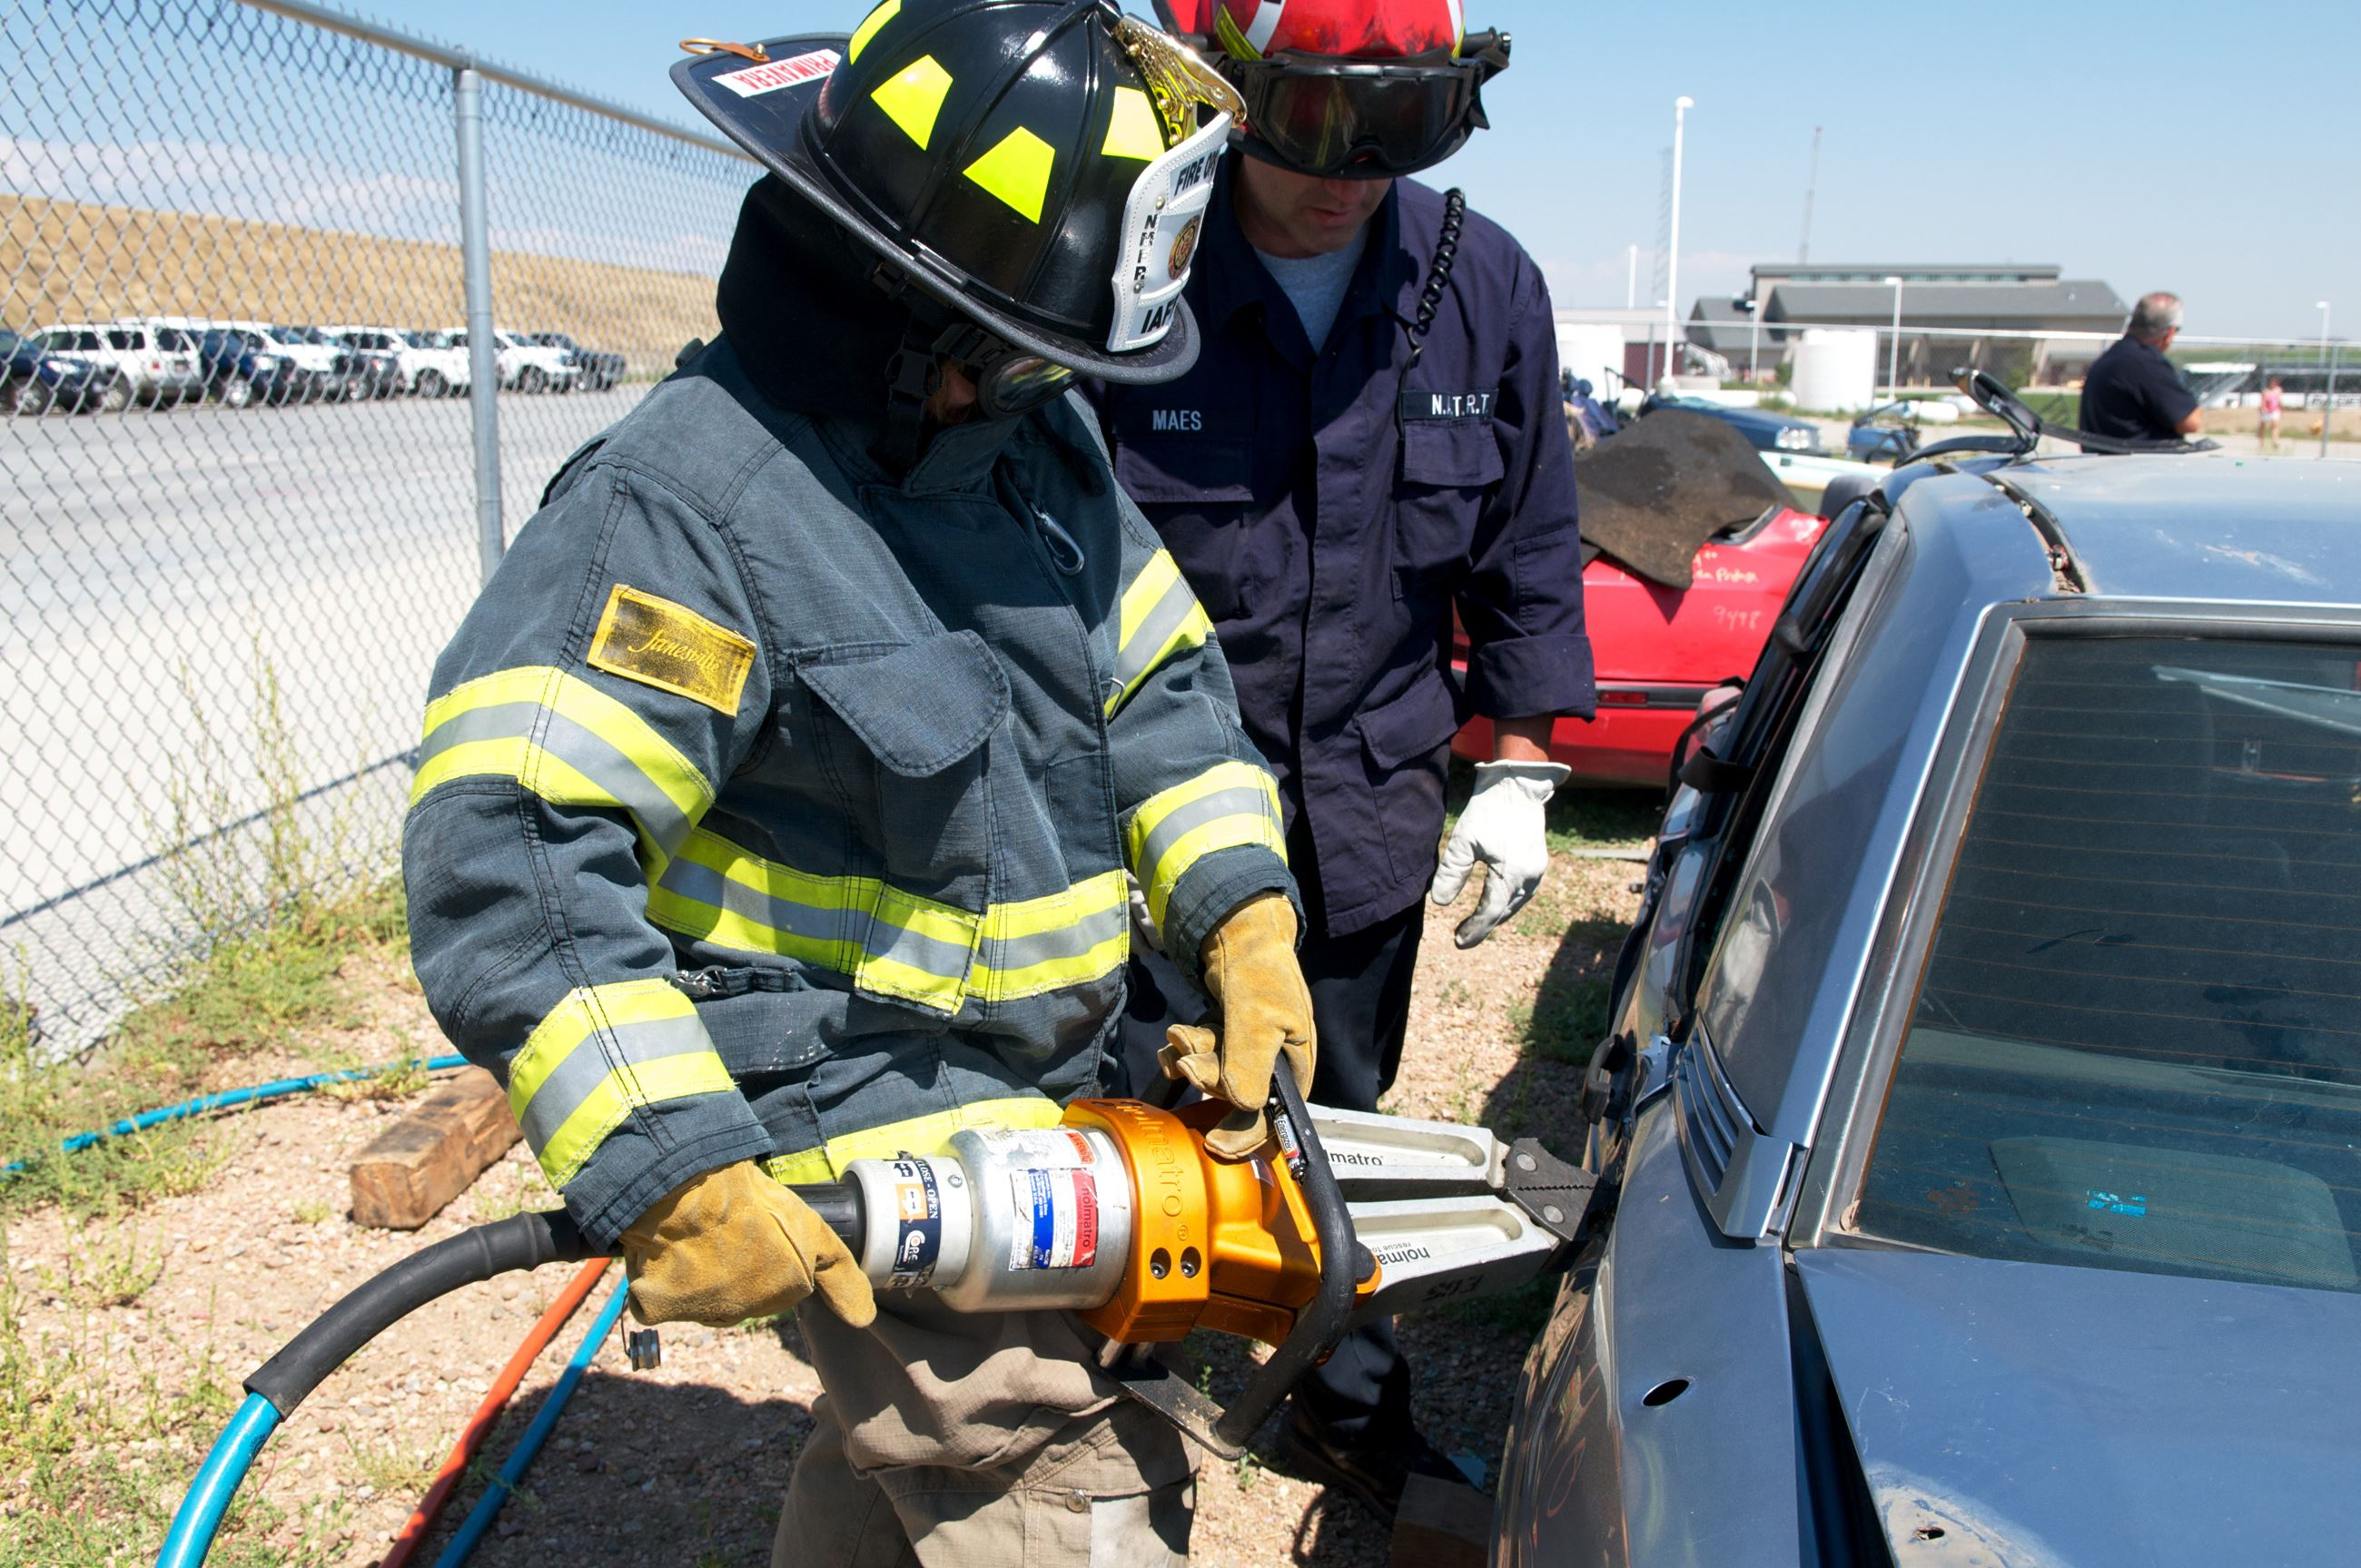 Citizen auto extrication training